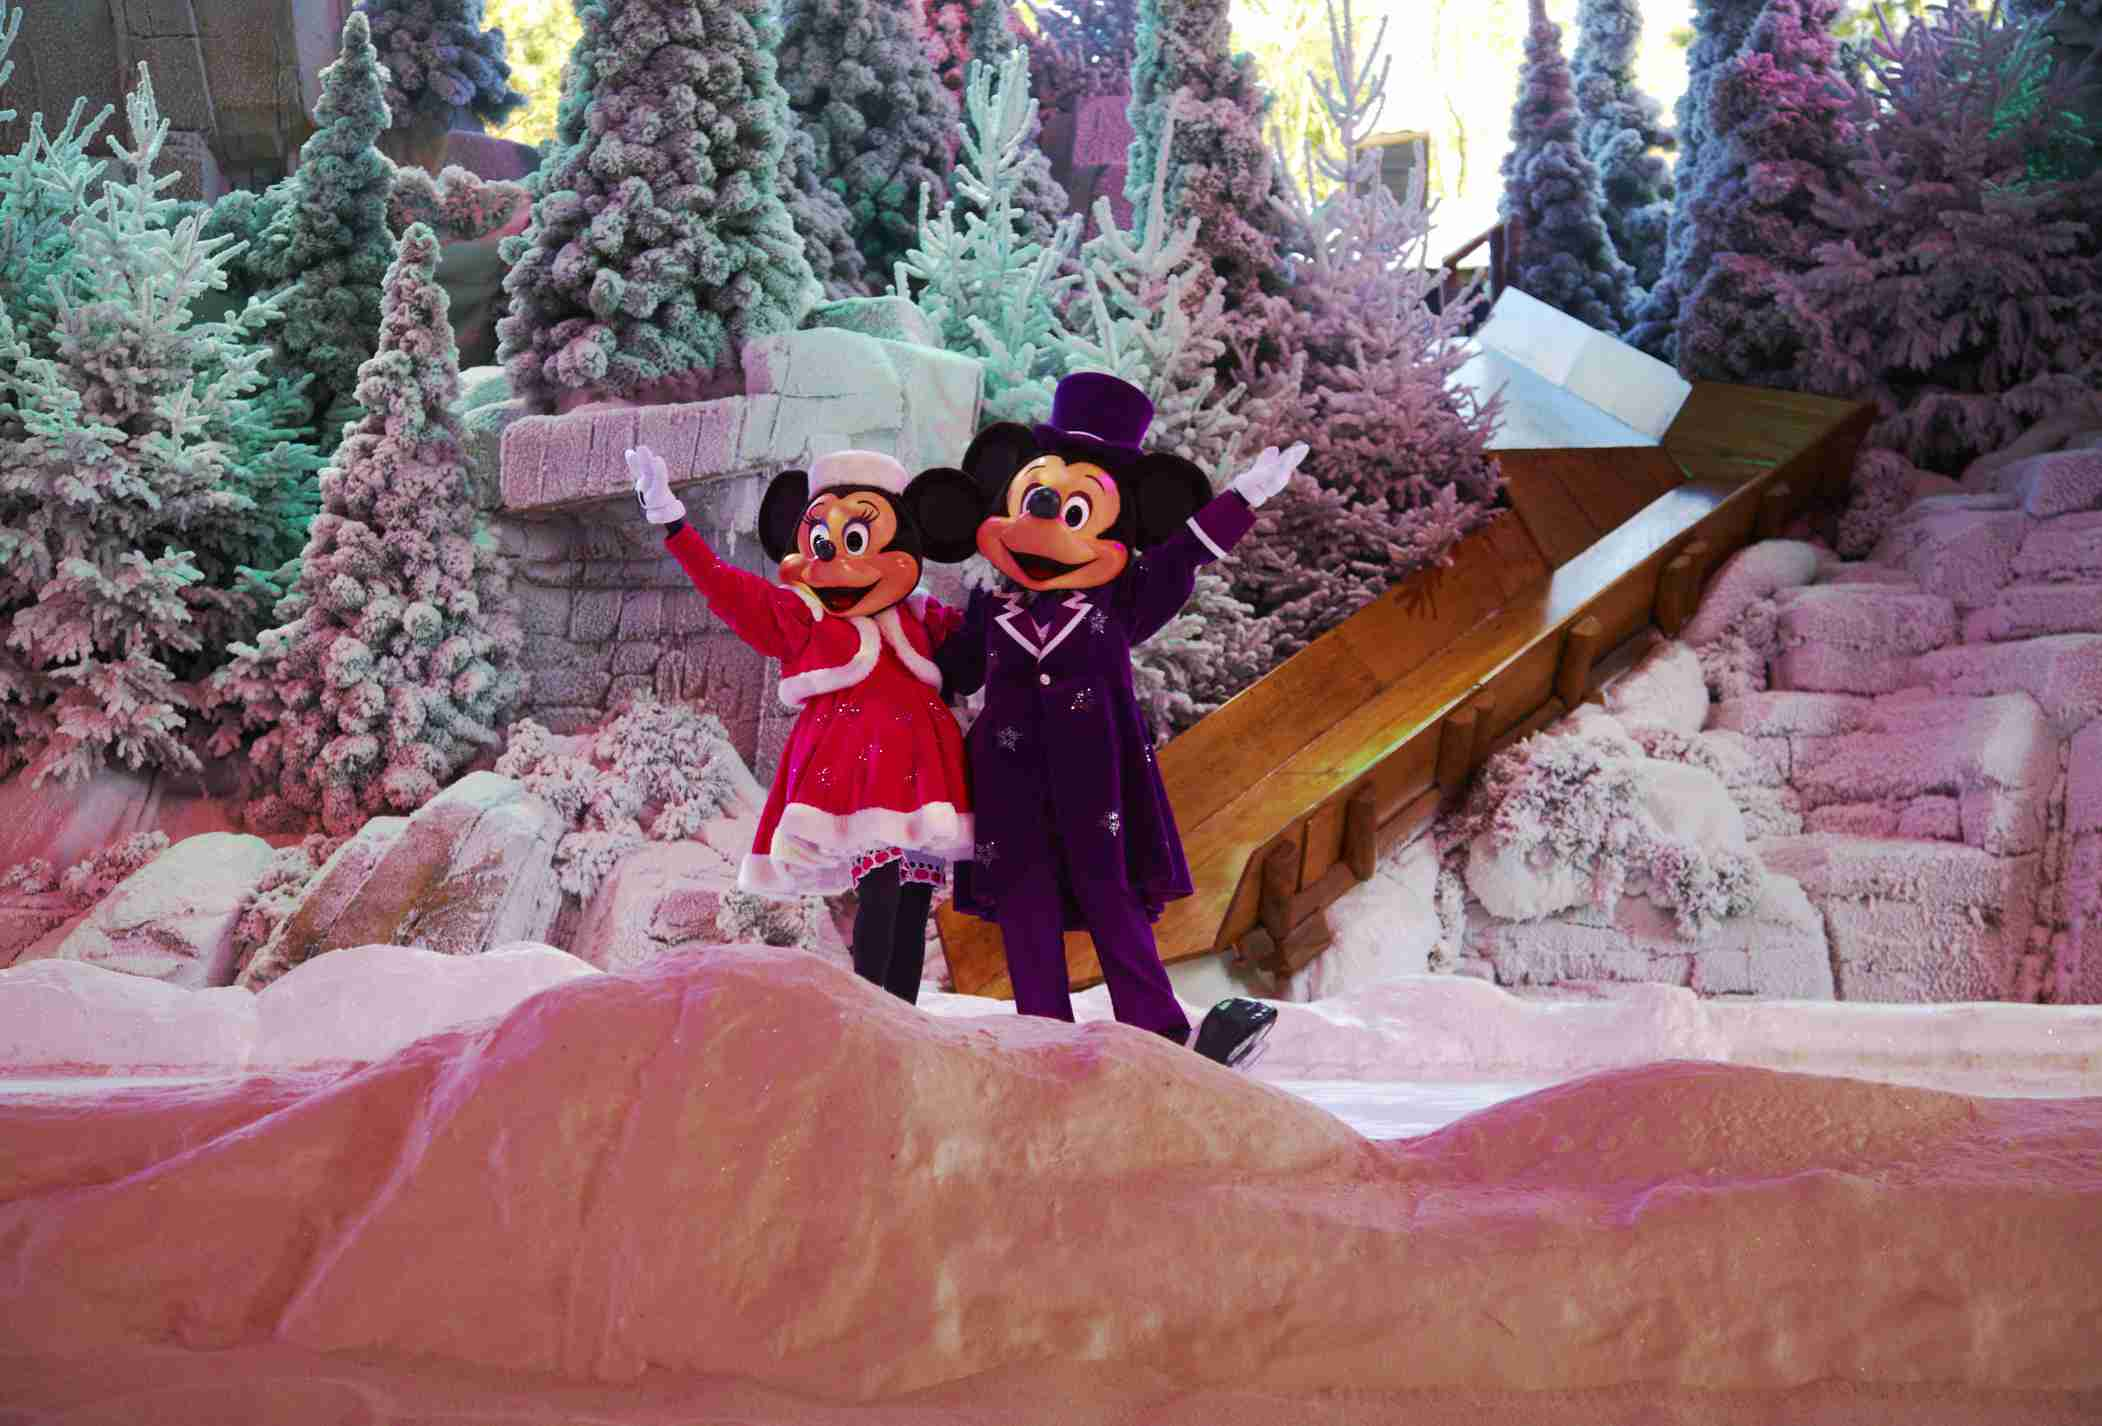 Christmas at Disneyland Paris can be fun for the whole family